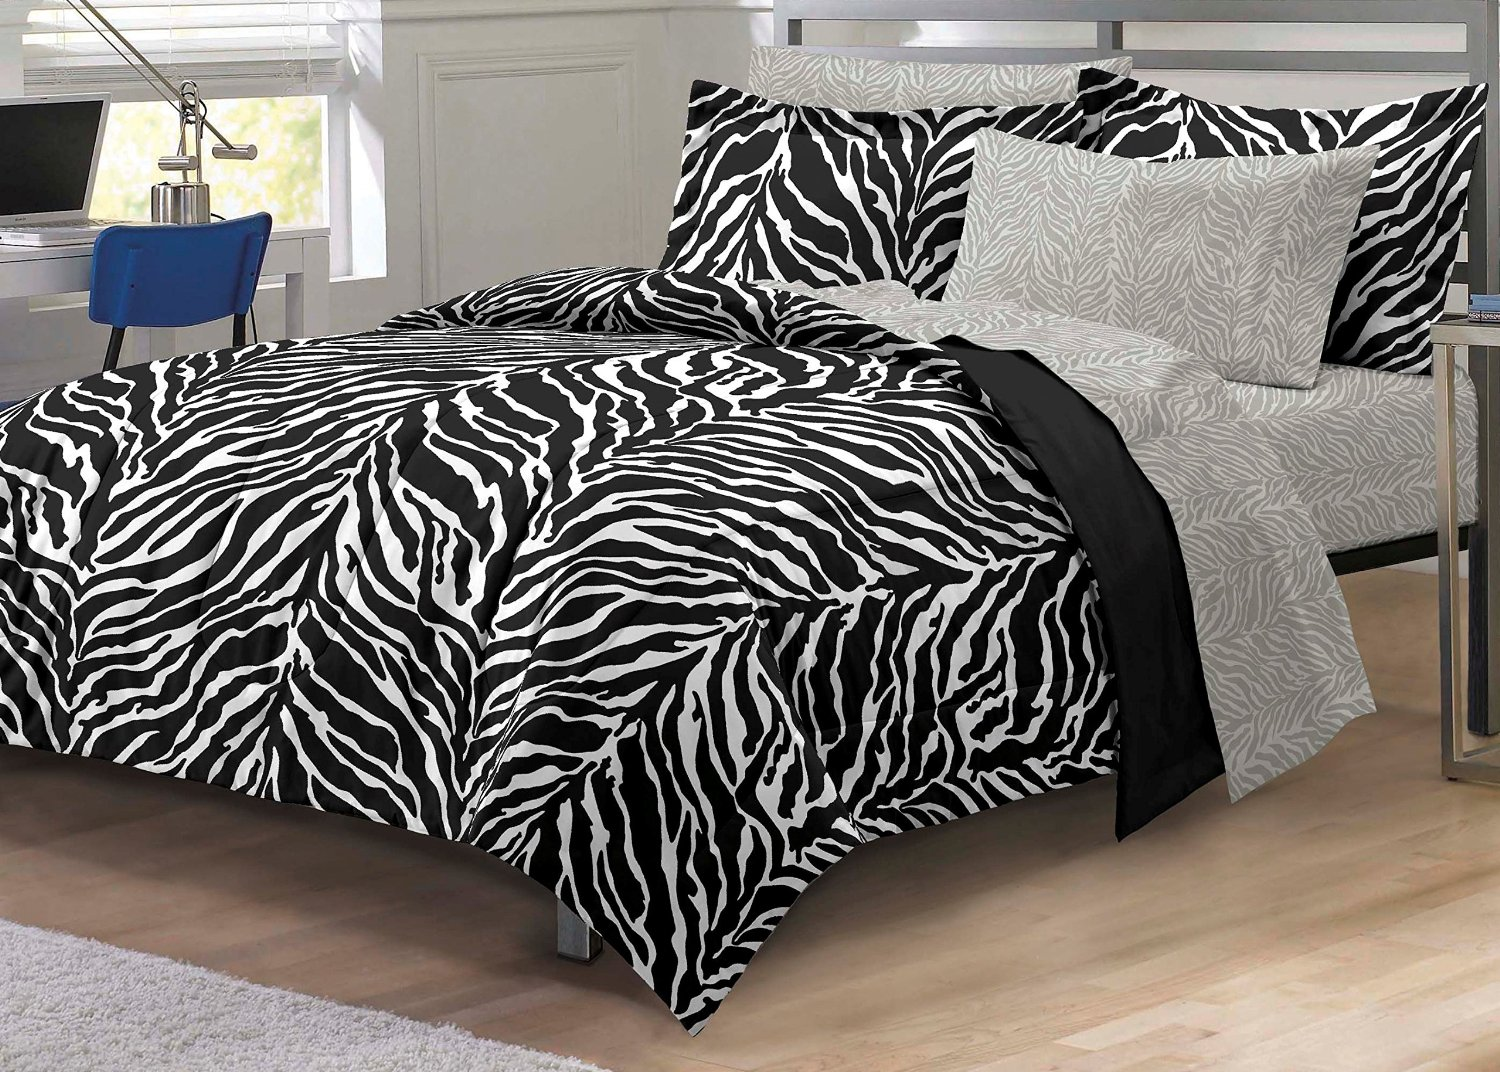 Total fab funky comforters bedding bedroom ideas for Zebra print bedding